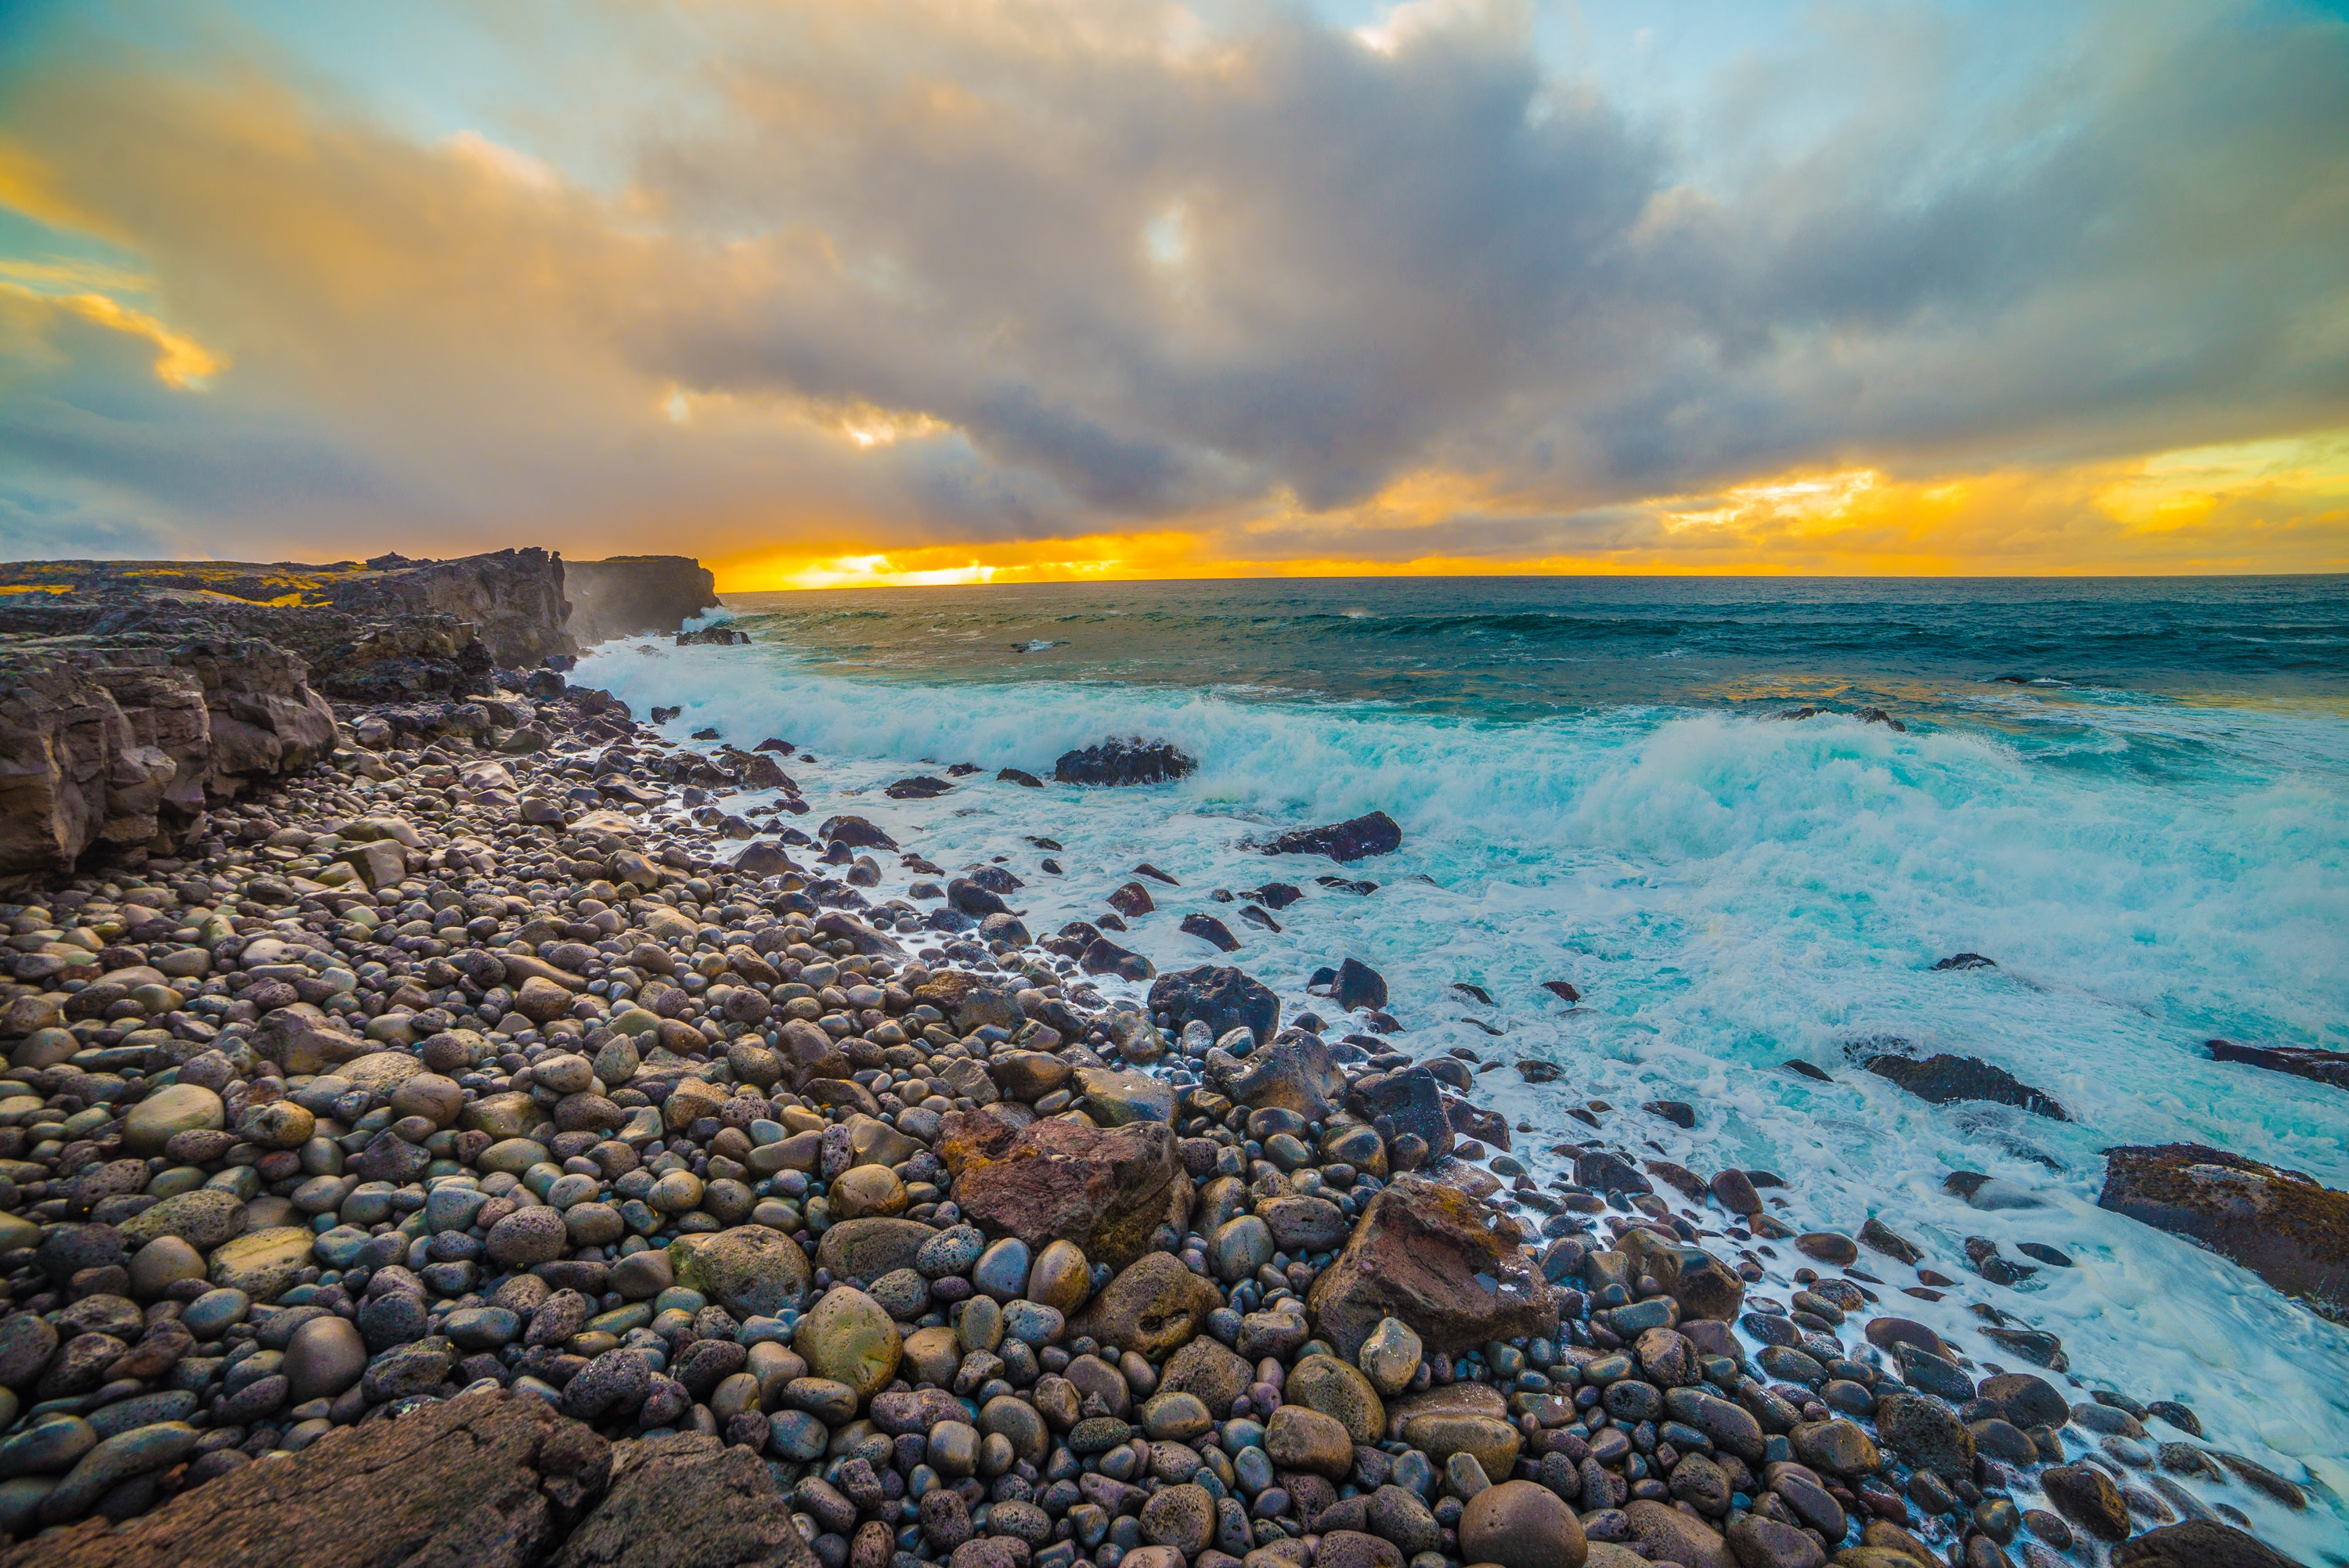 102819 download wallpaper Nature, Stones, Sea, Shore, Bank, Foam screensavers and pictures for free